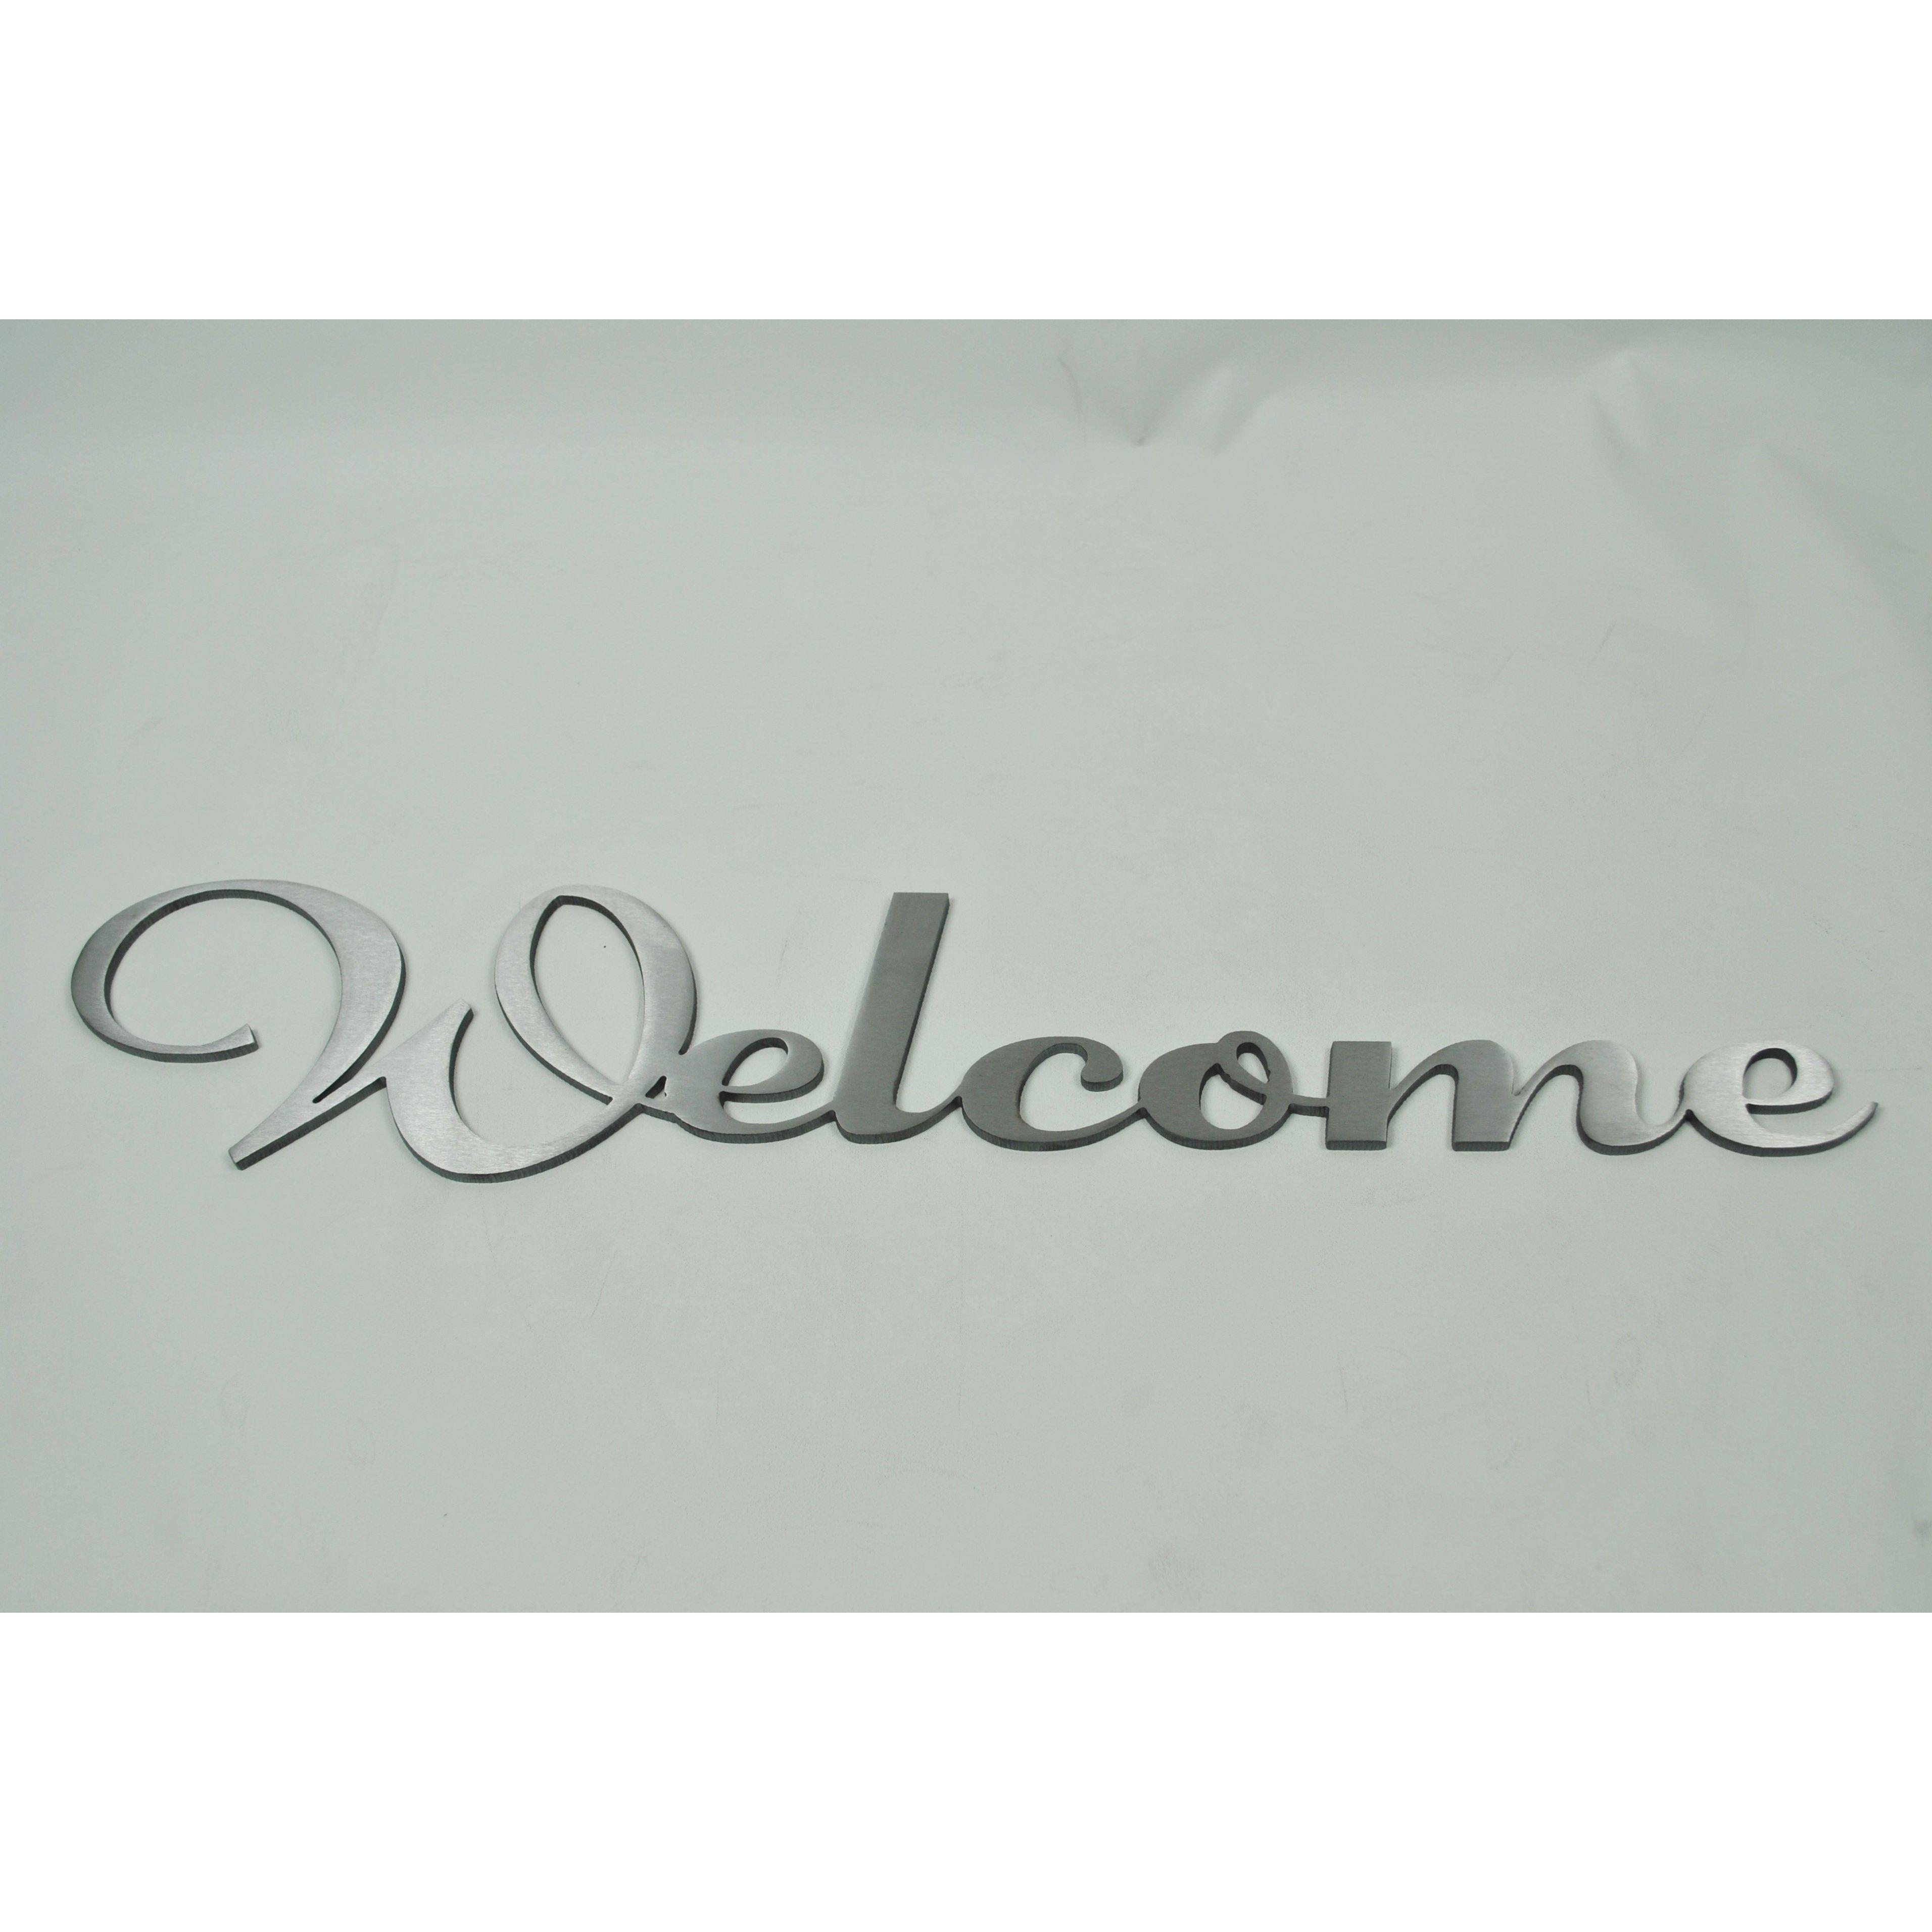 Welcome Sign Stainless Steel Metal Wall Art